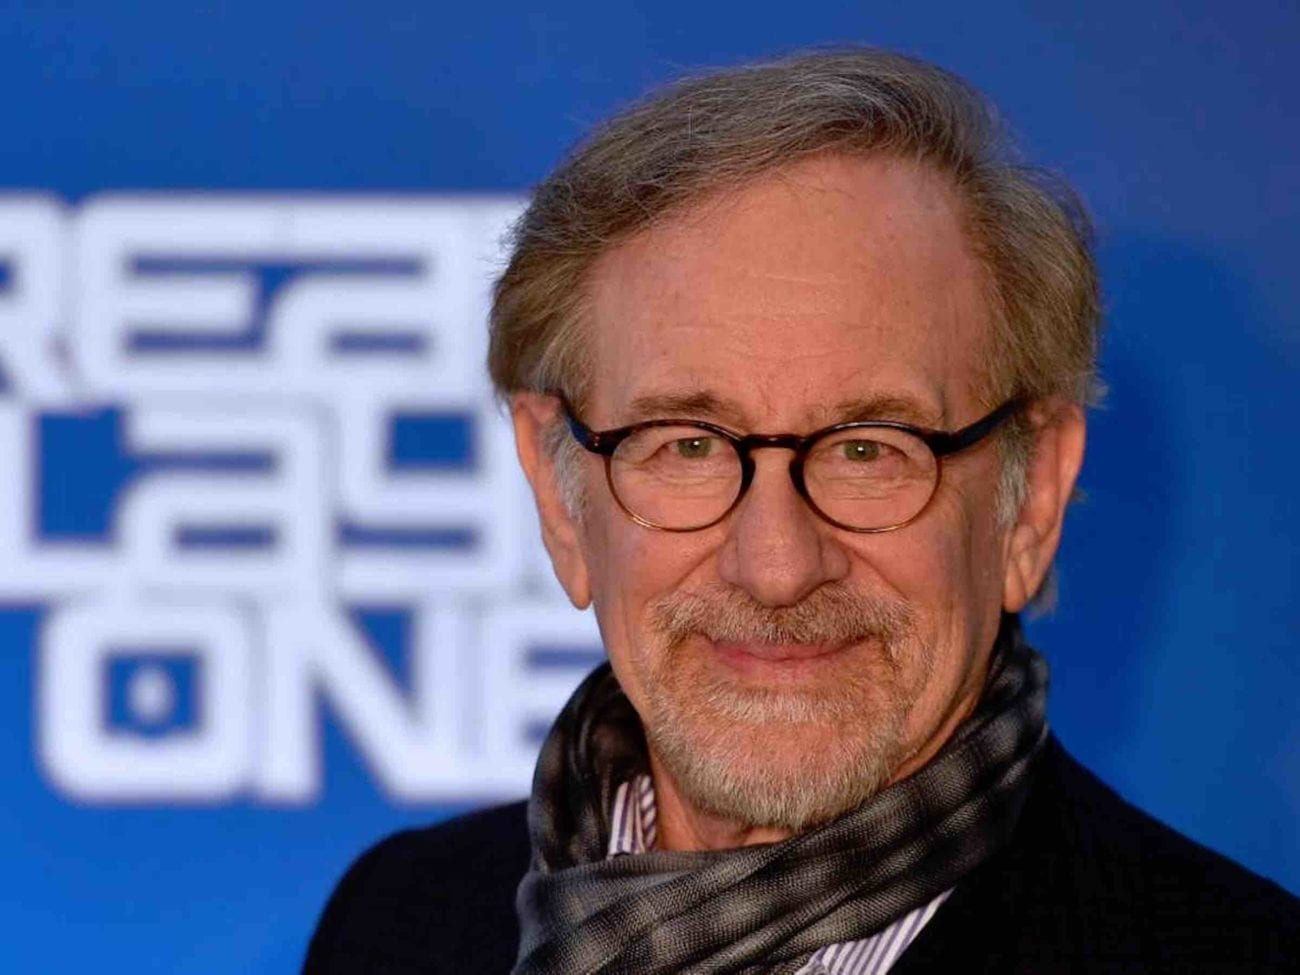 We're here to celebrate the Steven Spielberg movies that were pretty awful. Even the King of Hollywood can flounder sometimes.